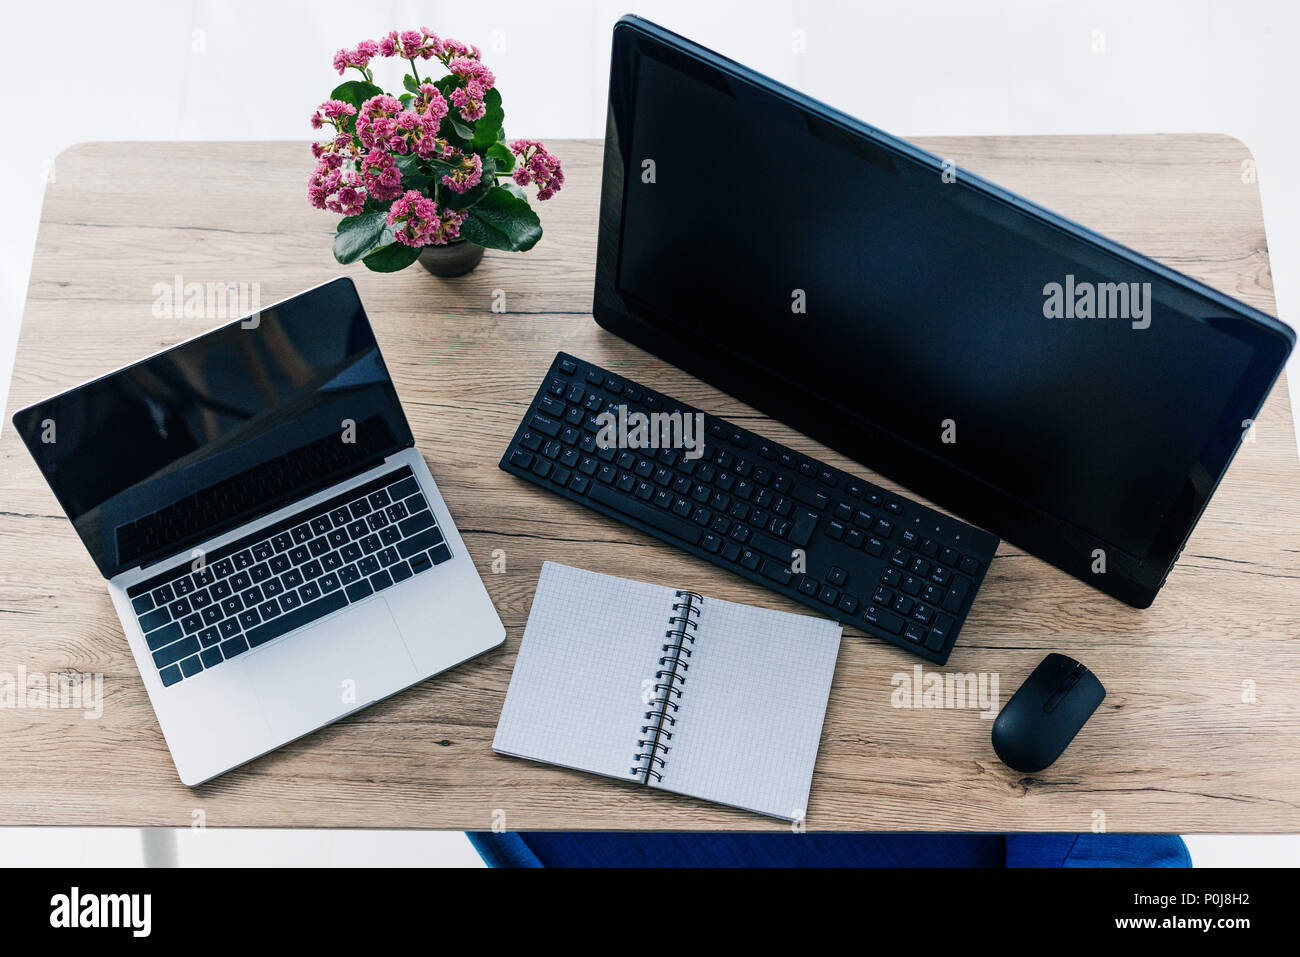 elevated view of table with flowers, empty textbook, laptop and computer with blank screens - Stock Image